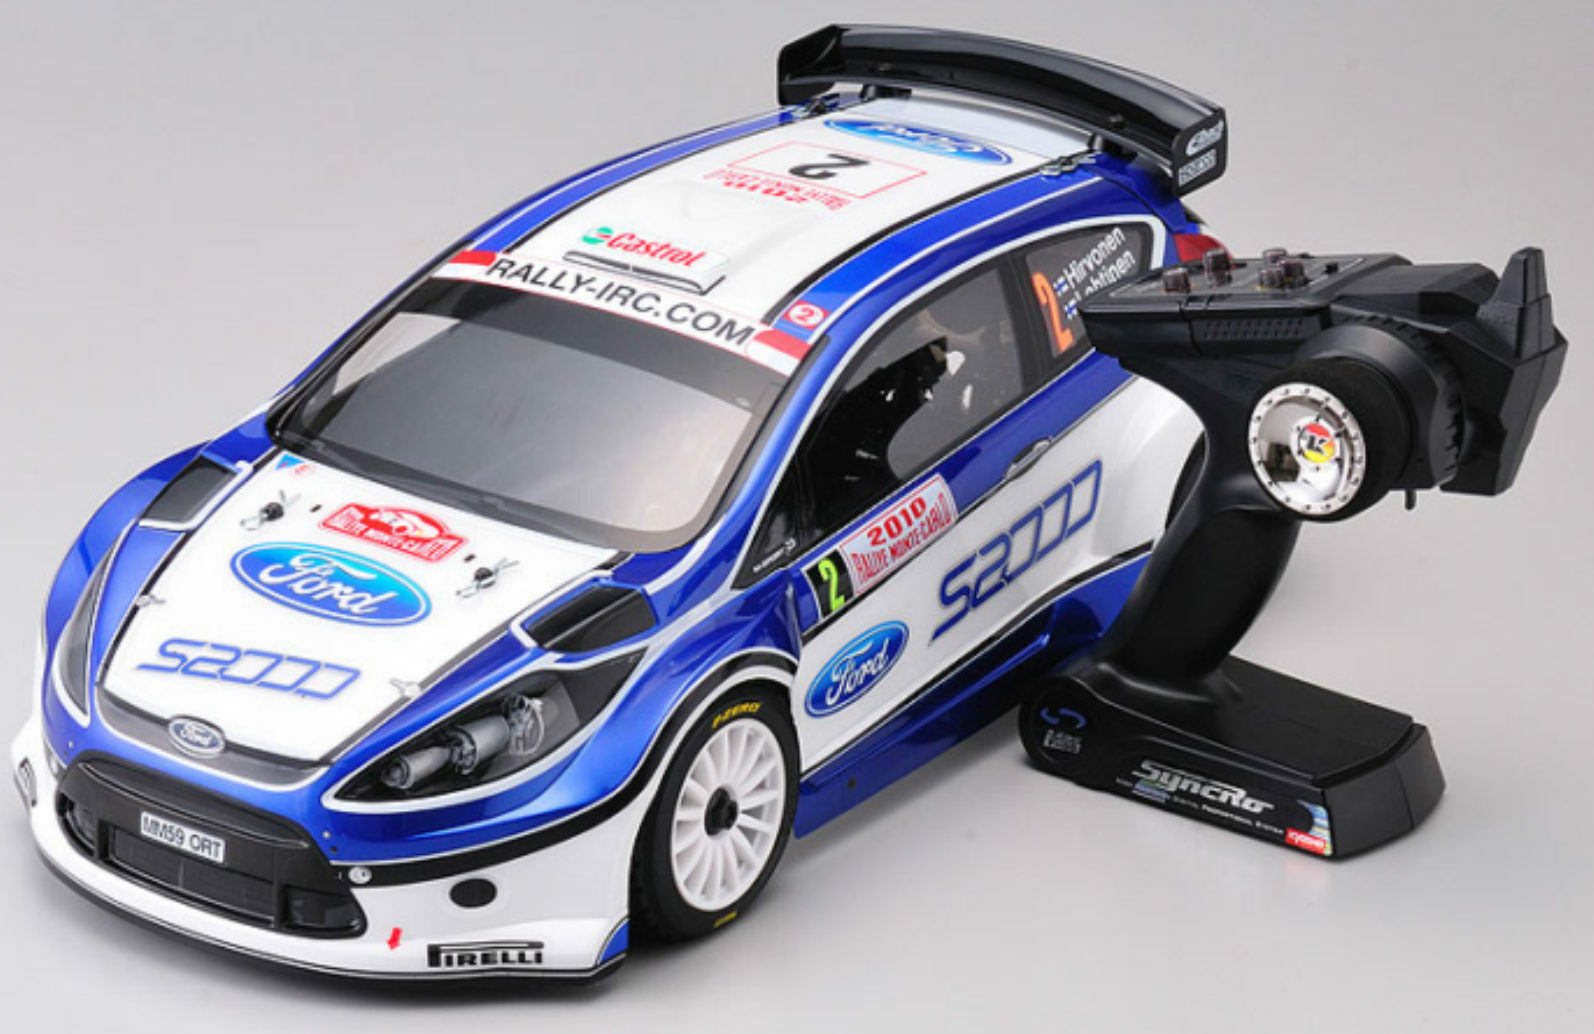 Kyosho 30881RS Drx Ve Ford Fiesta S2000 4WD Rtr  KT200